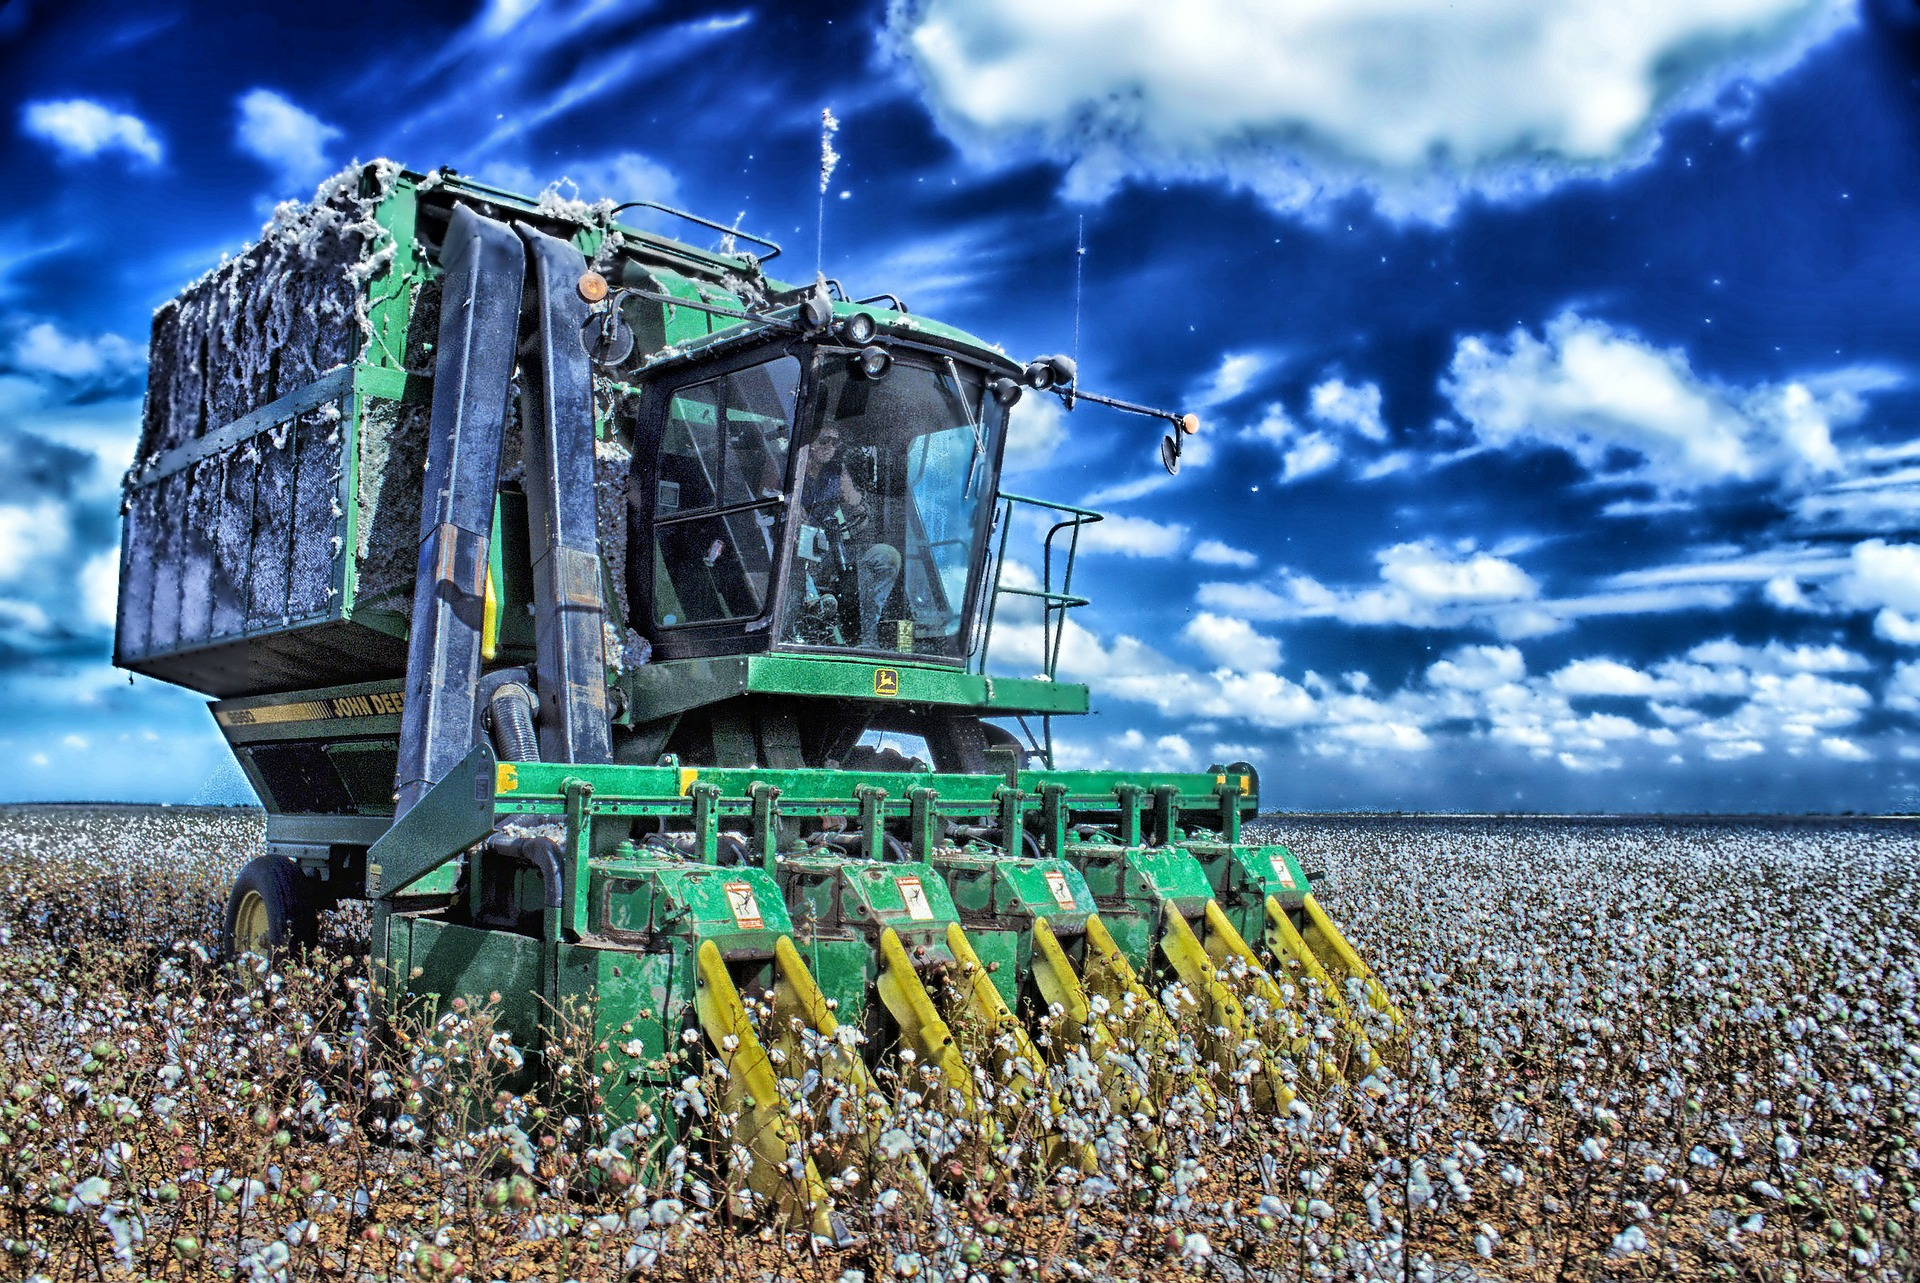 cotton-harvester-139651_1920.jpg